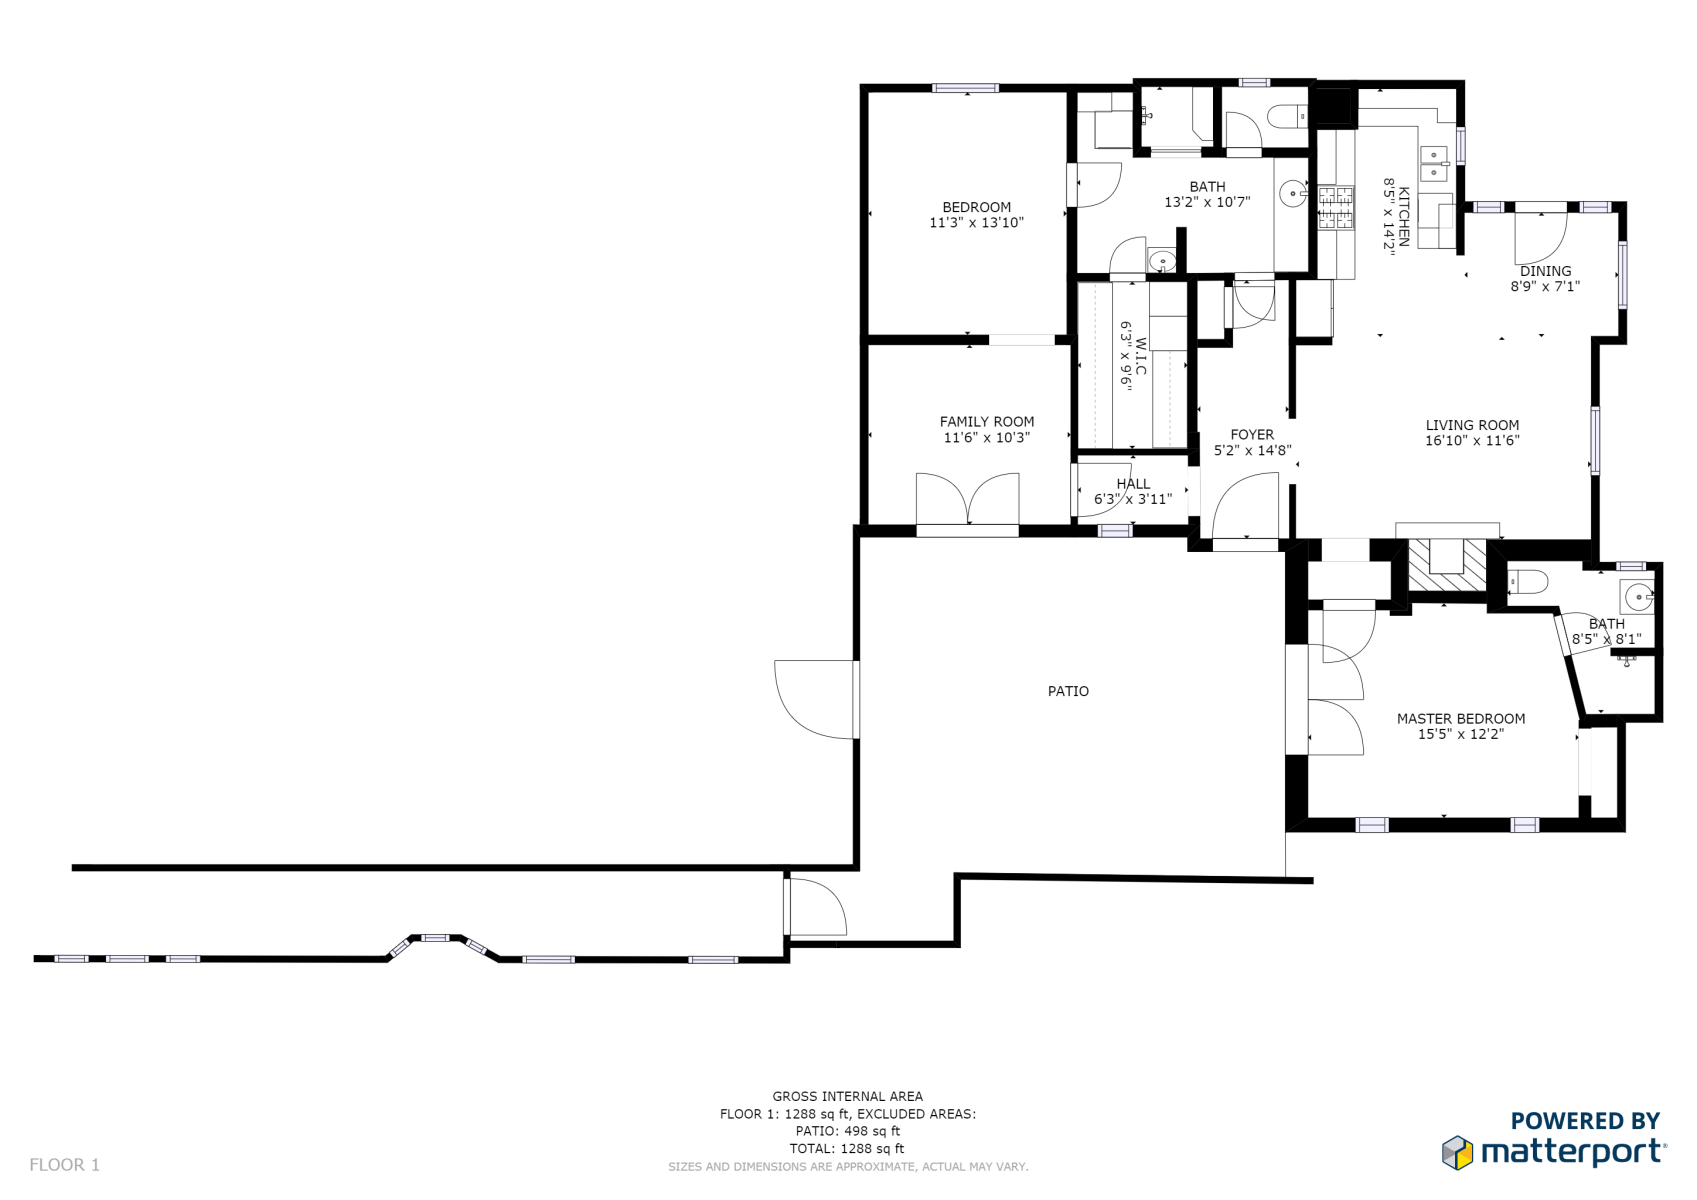 Floor Plan for Black Mesa Casita - 2 Bed, 2 Bath Casita